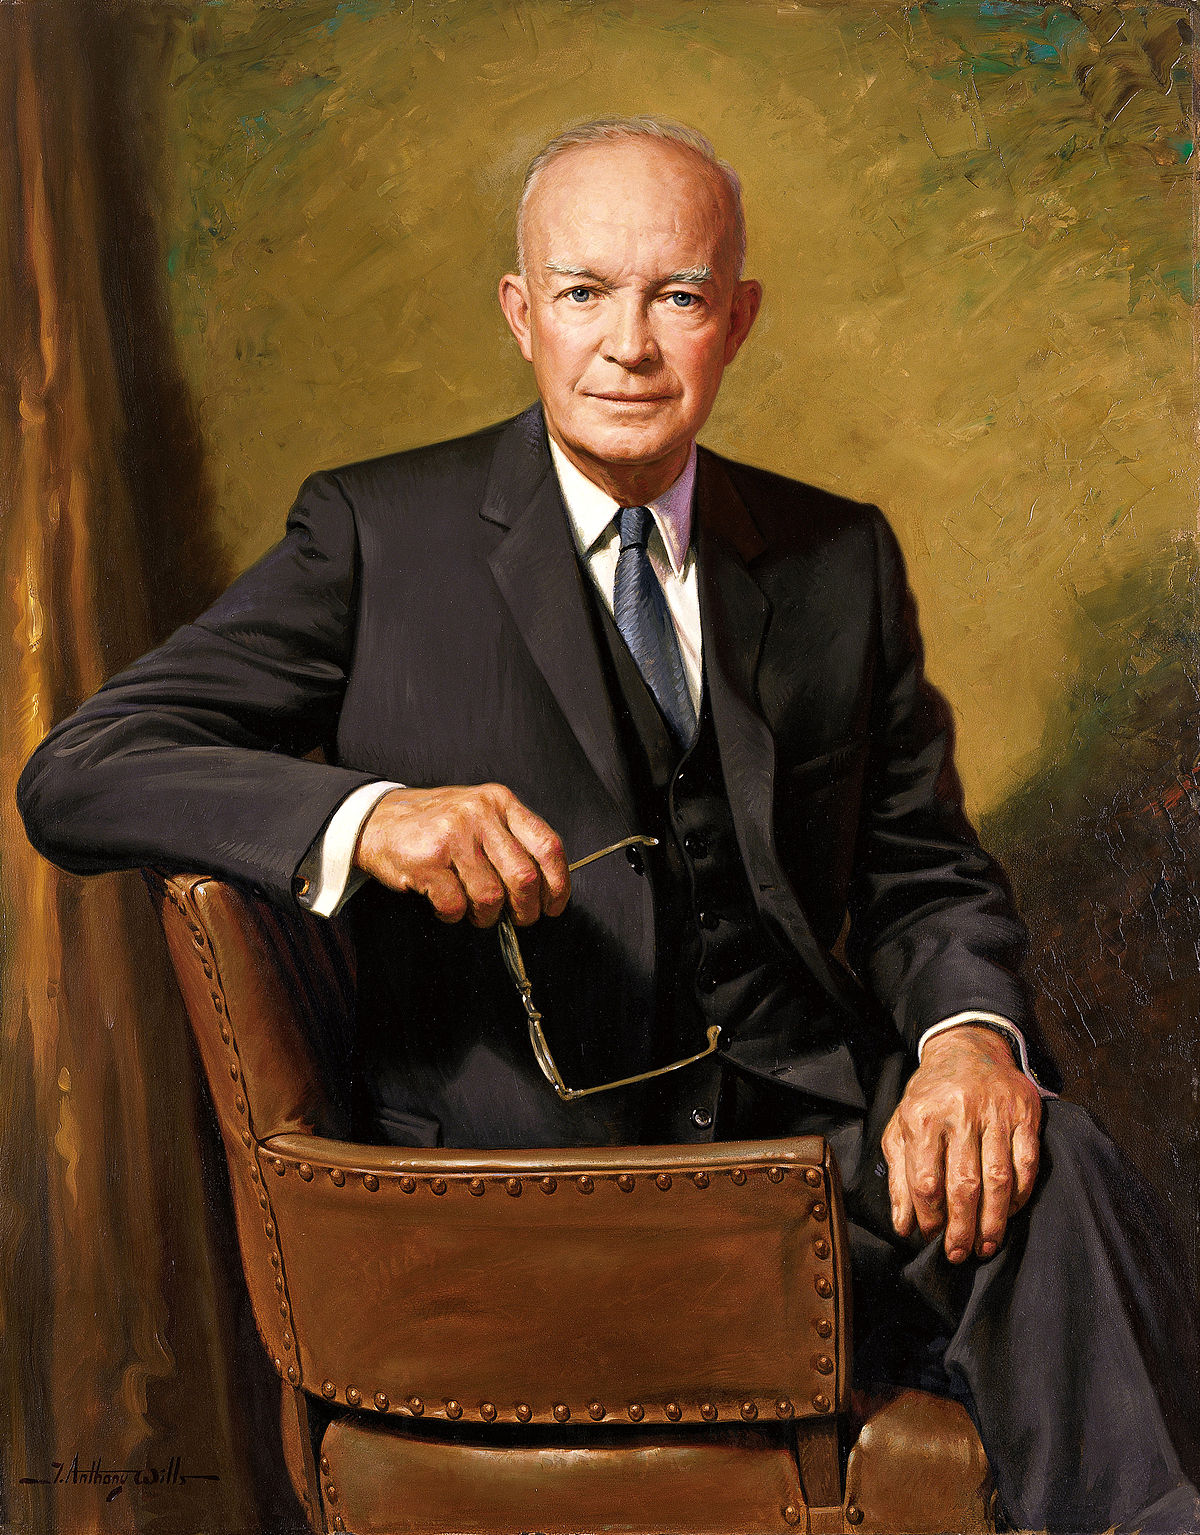 Presidency of Dwight D. Eisenhower - Wikipedia